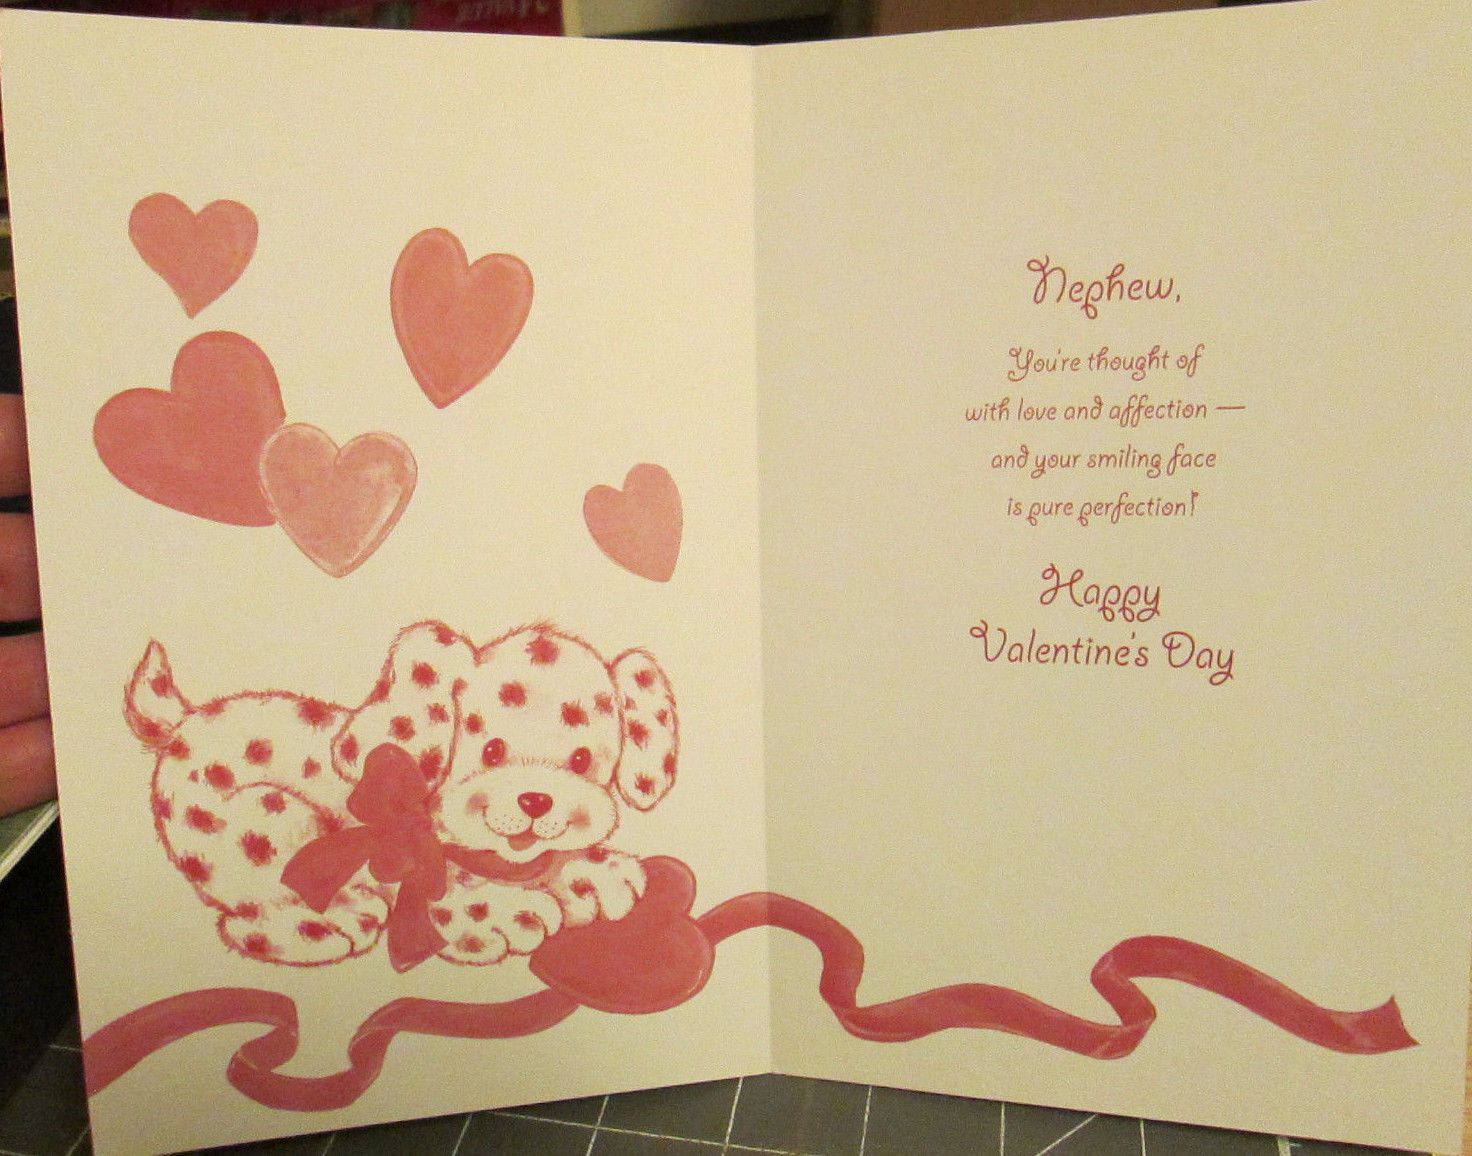 Ps greetings happy valentines day special nephew card dalmatian new unused ps greetings tender thoughts greeting card dalmatian puppy dog with heart kristyandbryce Choice Image